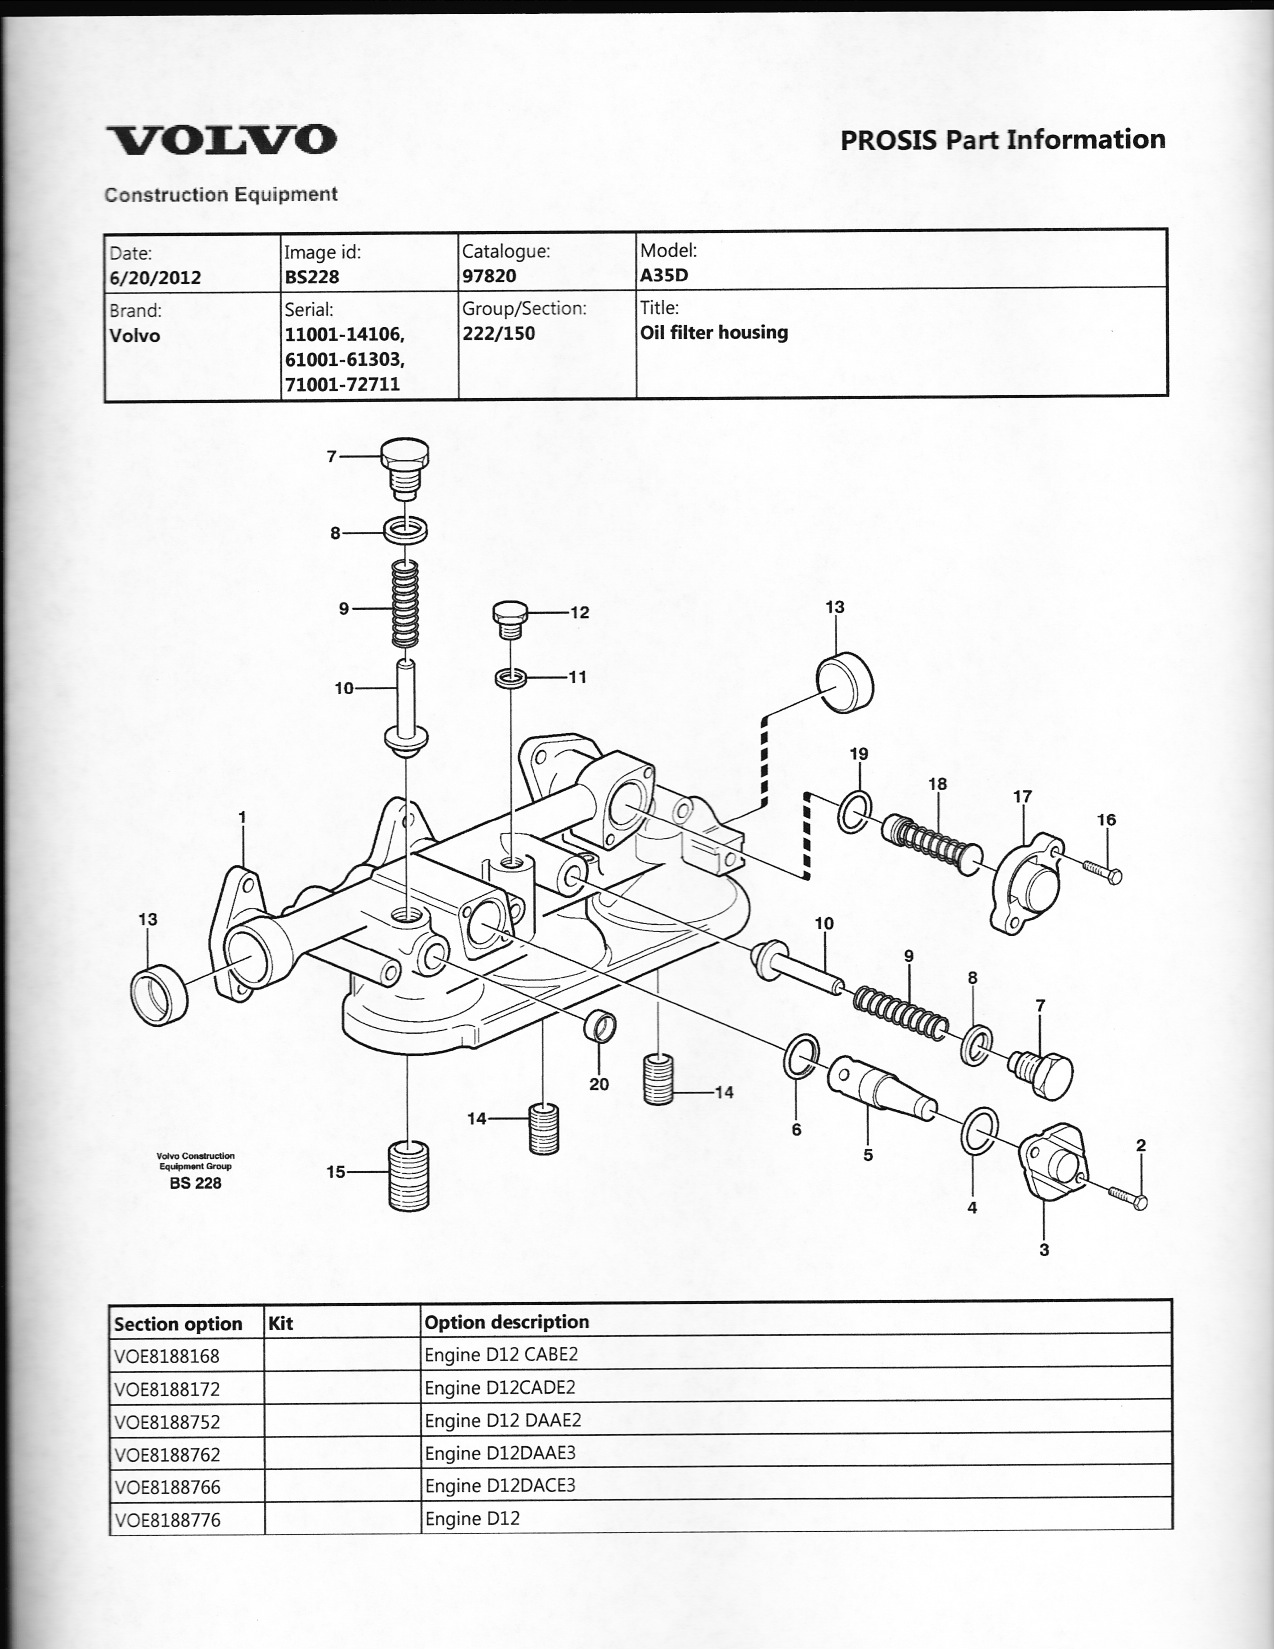 d13 engine diagram wiring diagrams volvo d13 engine diagram wiring diagram expert d13 engine diagram